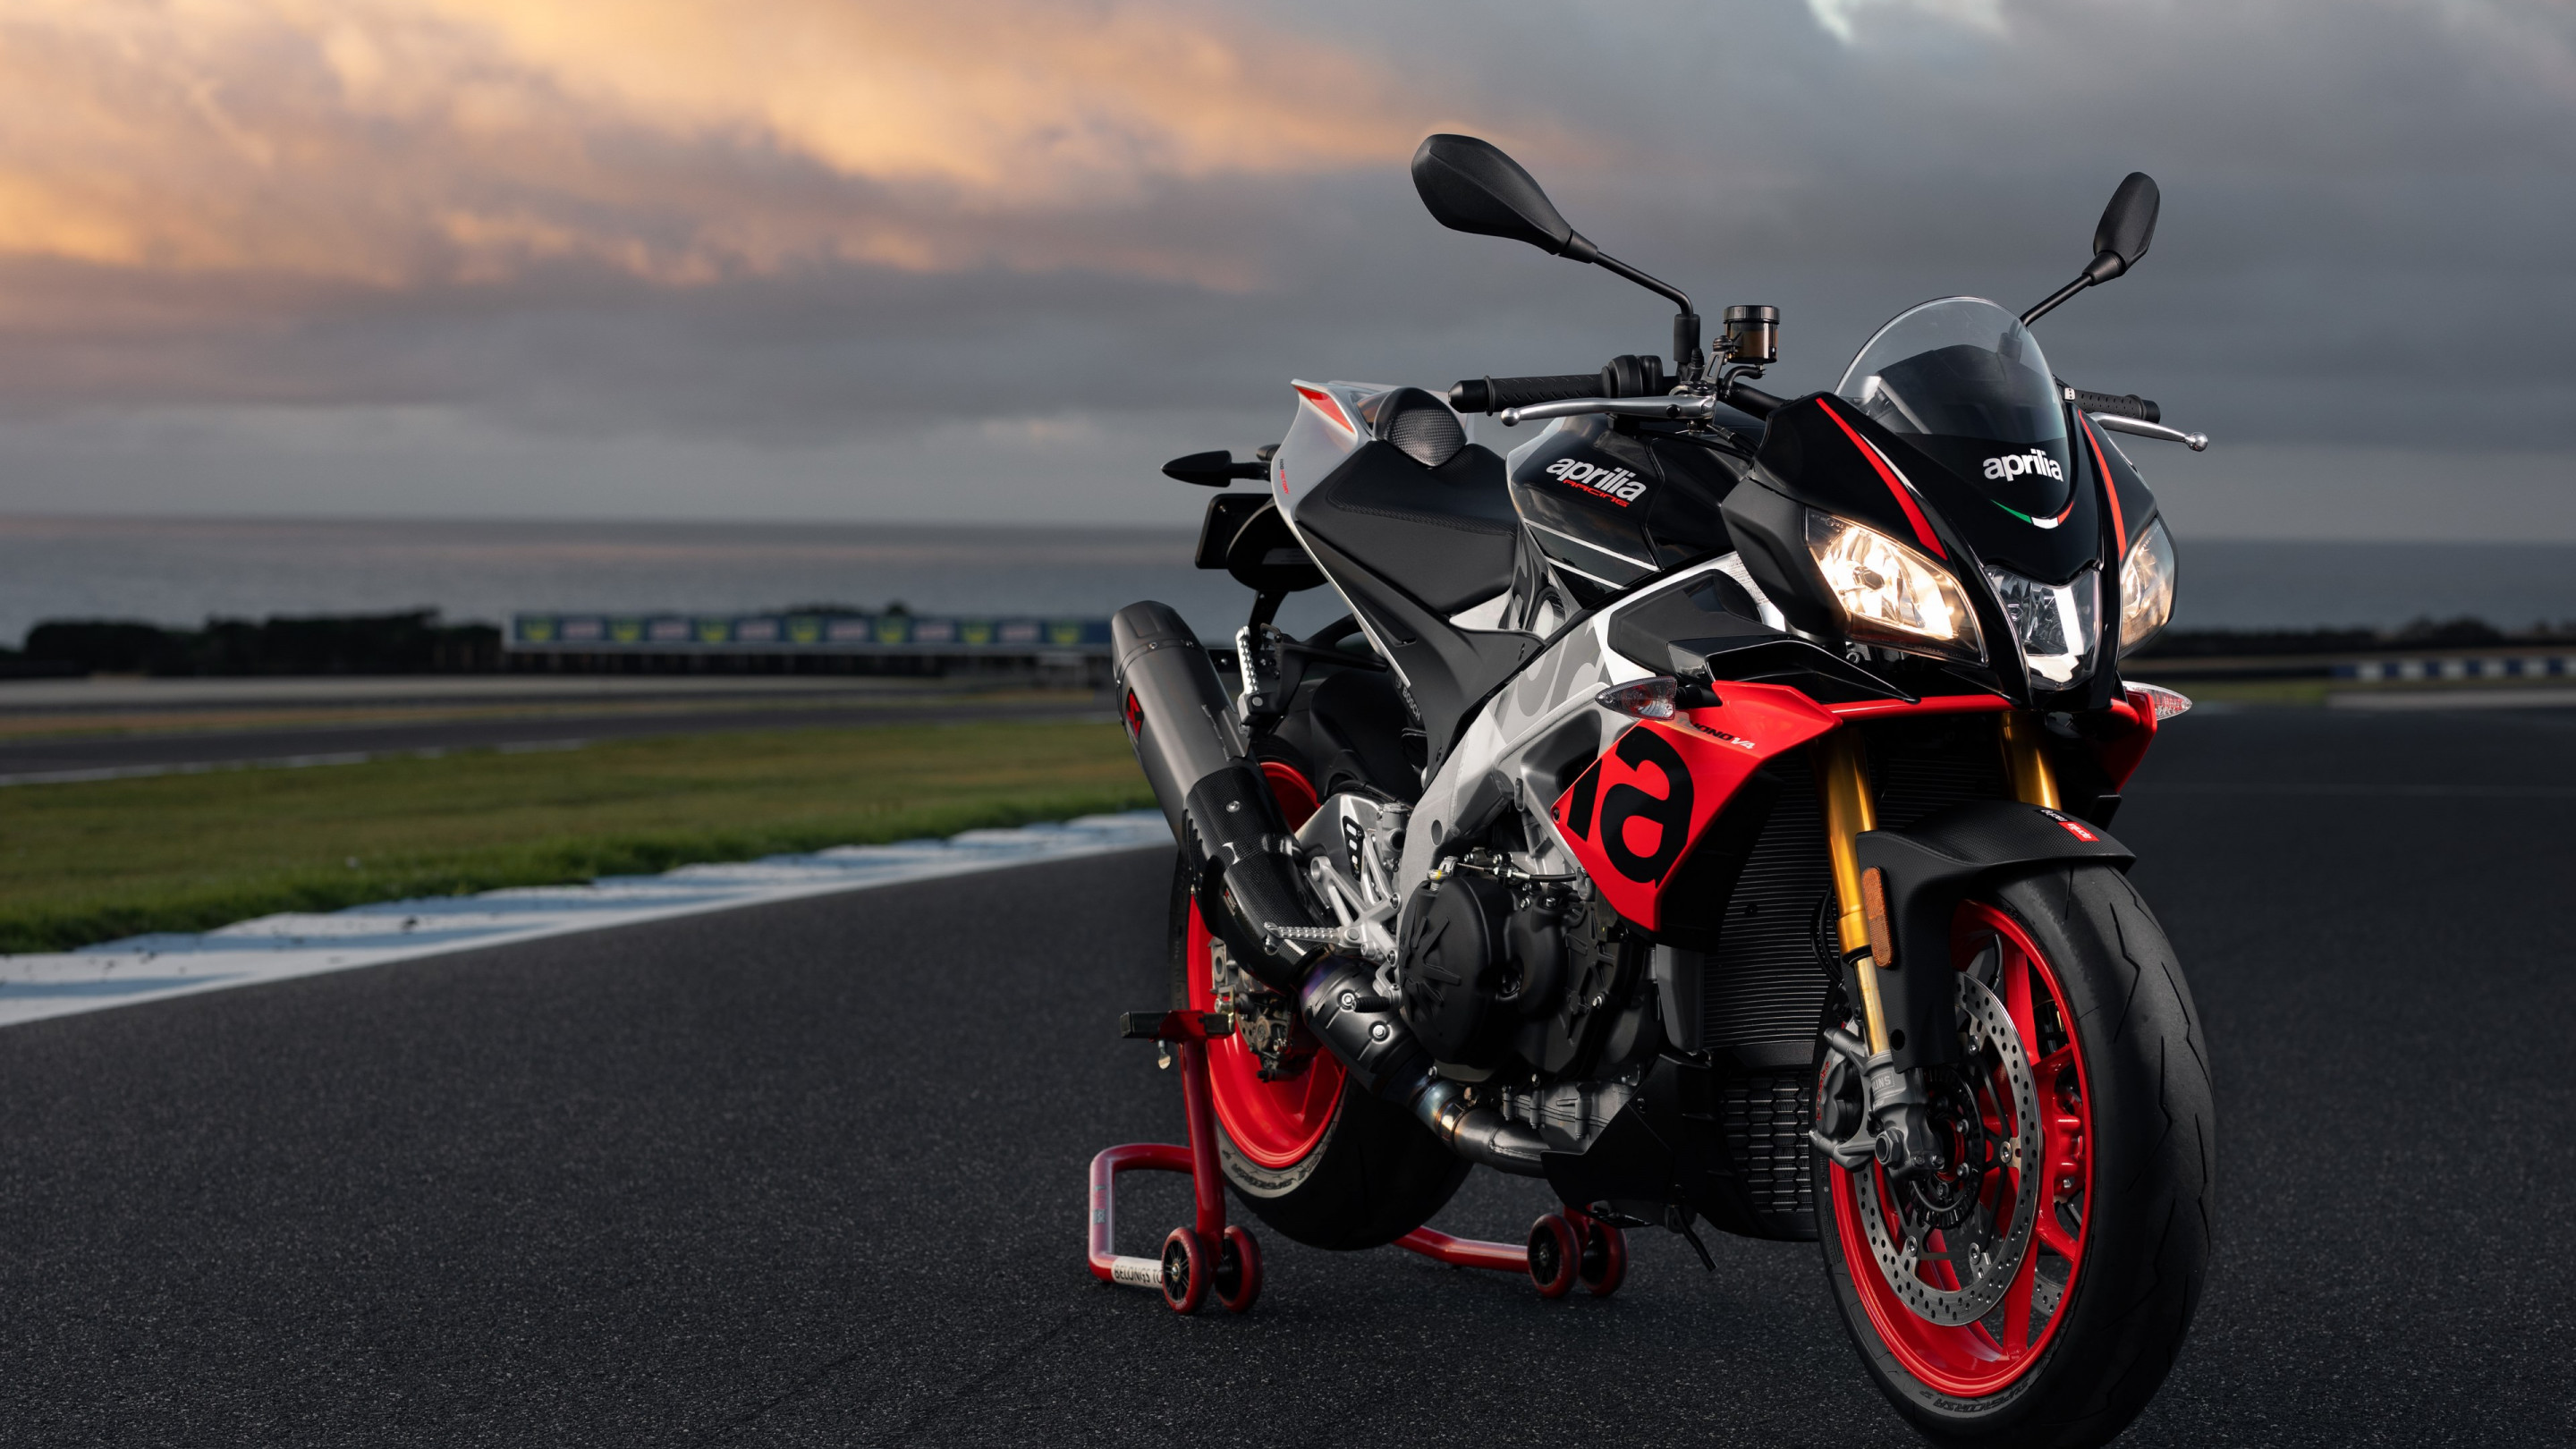 Aprilia Tuono V4 1100 Factory wallpaper 2880x1620